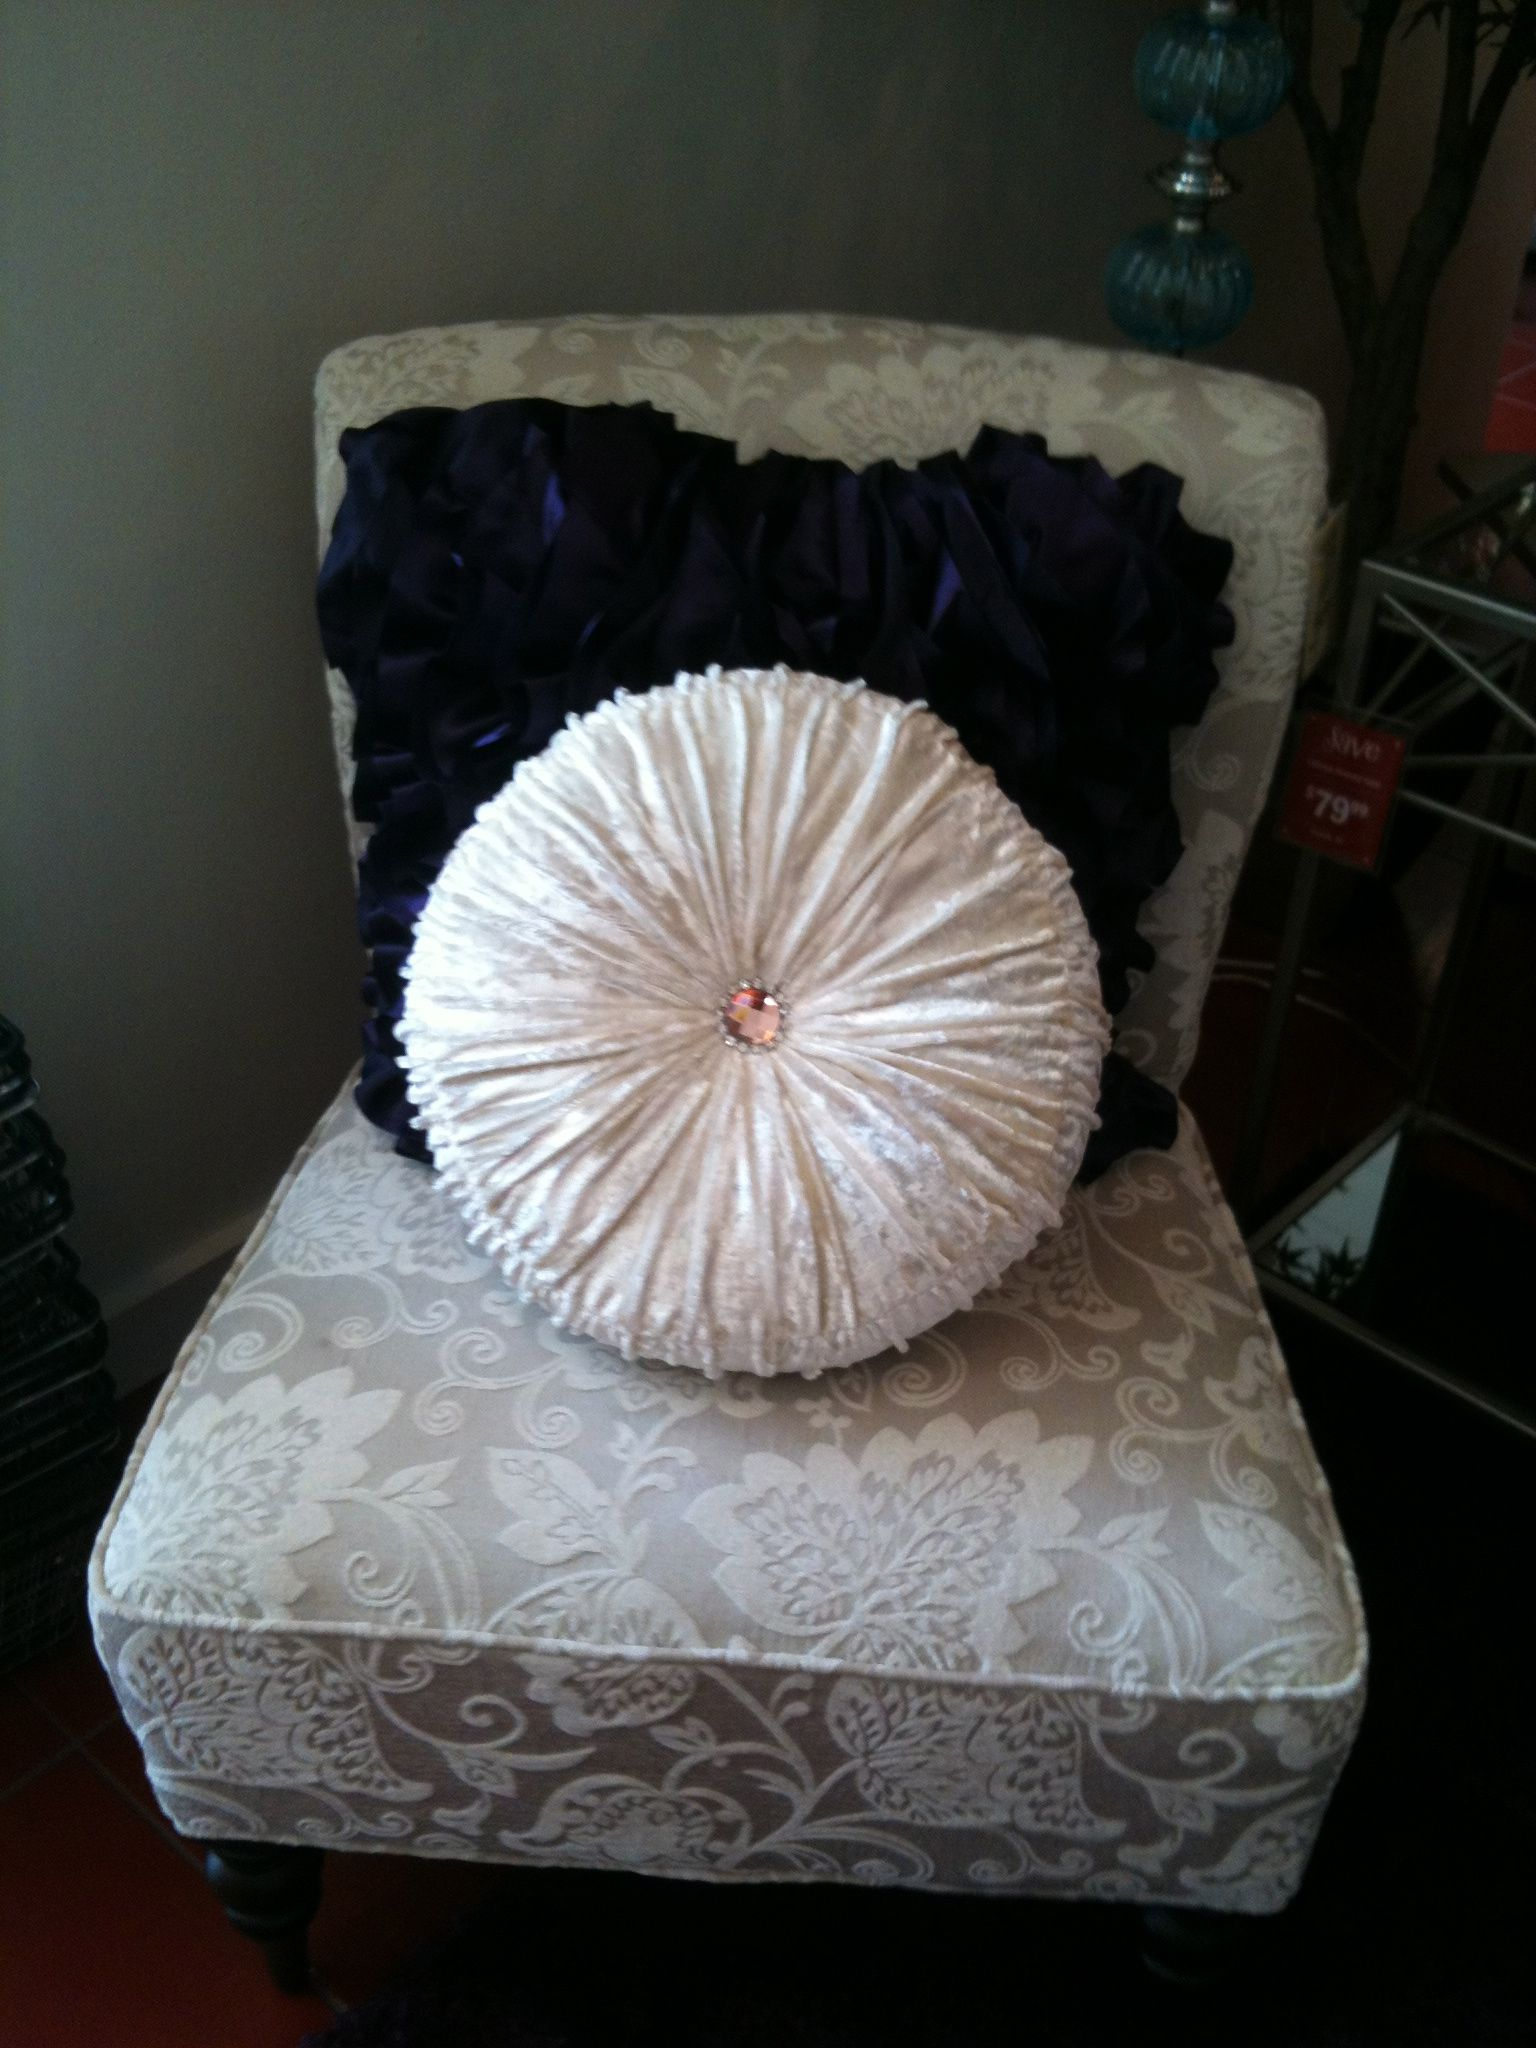 Superb Pier 1 Ivory Leaves Addyson Chair And Round Velvet With Stones Pillow